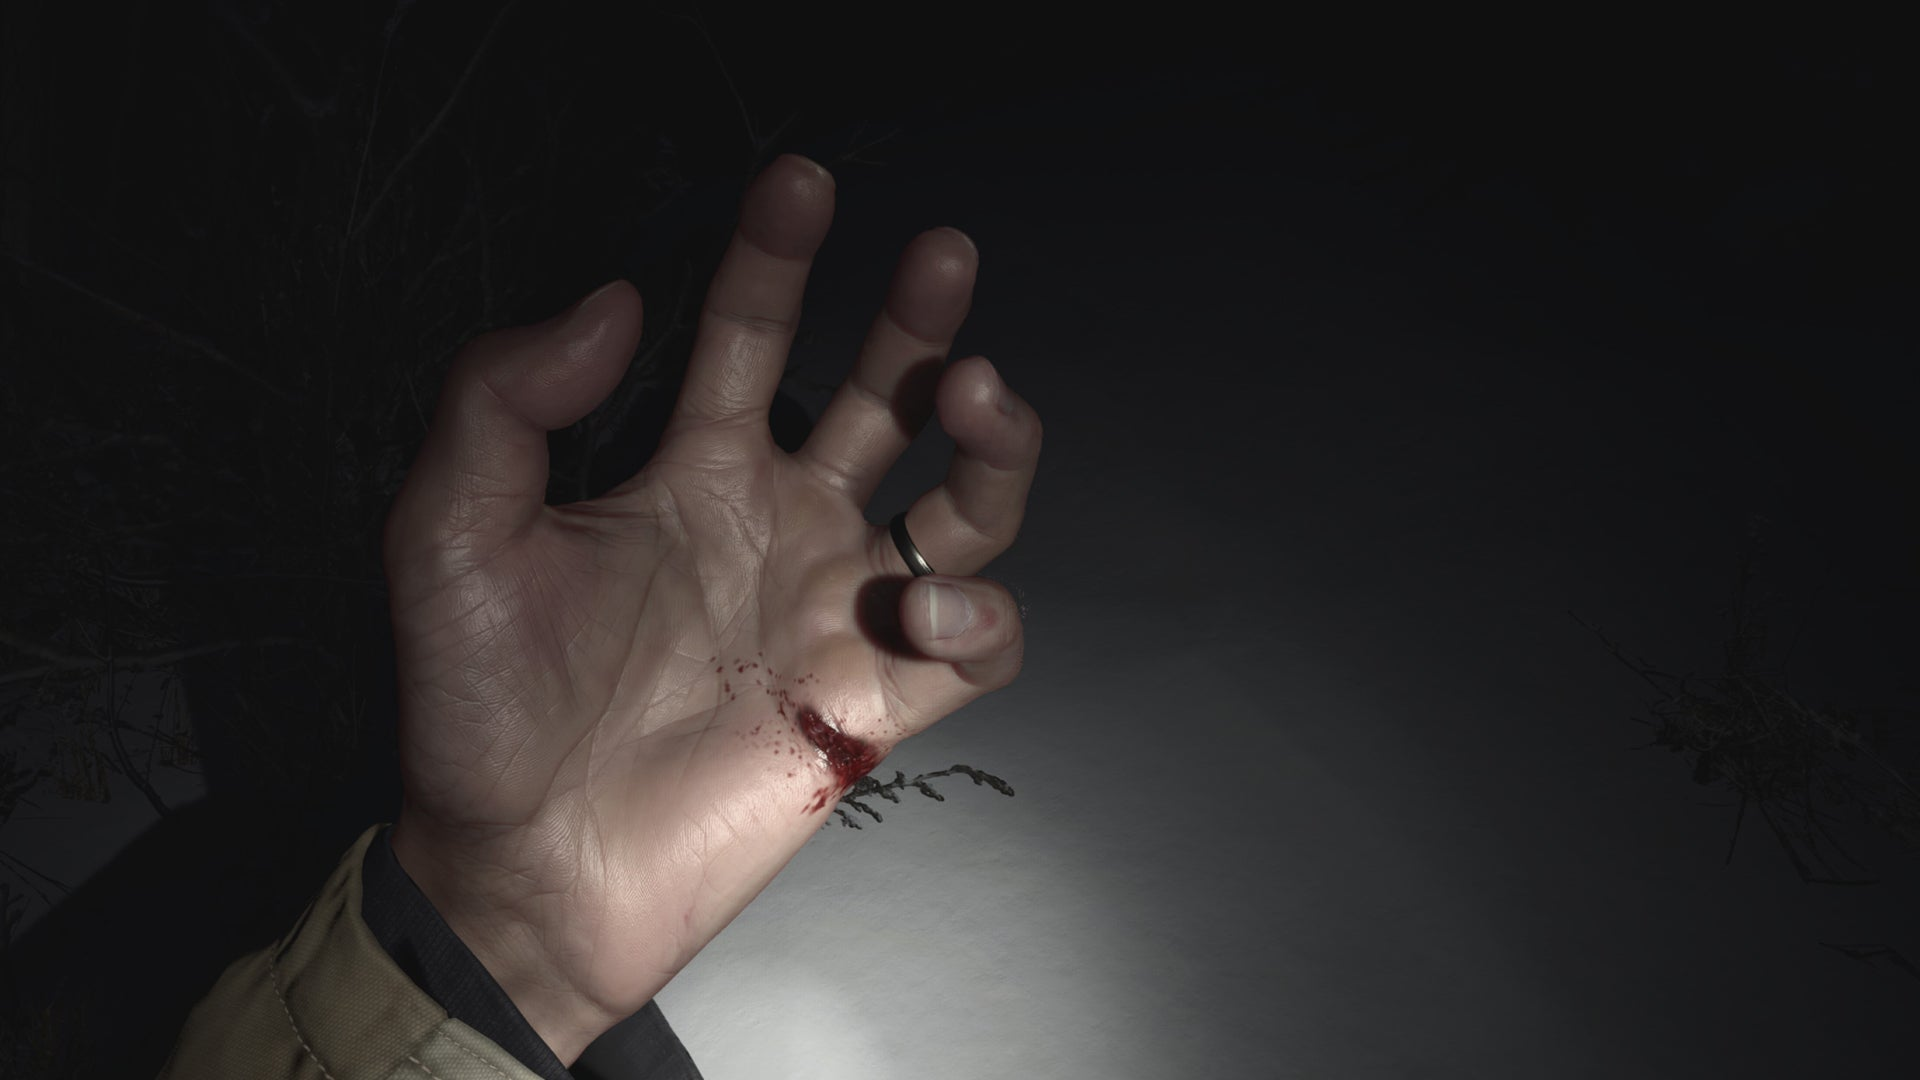 1. Barbed Wire</p></p>  While wading through the dark late night/early morning and the squelchy, pure white snow of Village's post-prologue sequence, Ethan encounters a barbed-wire fence. Village's precedent is instantly set here, as Ethan carelessly cuts his left hand while using it to lift the wire and allow the rest of his body safe passage. It's a deep gash, as evidenced when Ethan shines a light on his profusely bleeding palm, shortly before he's forced to crawl on a dirty, blood-soaked wooden floor of a nearby cabin he discovers. Let's not even begin to imagine what infections he might have gotten.